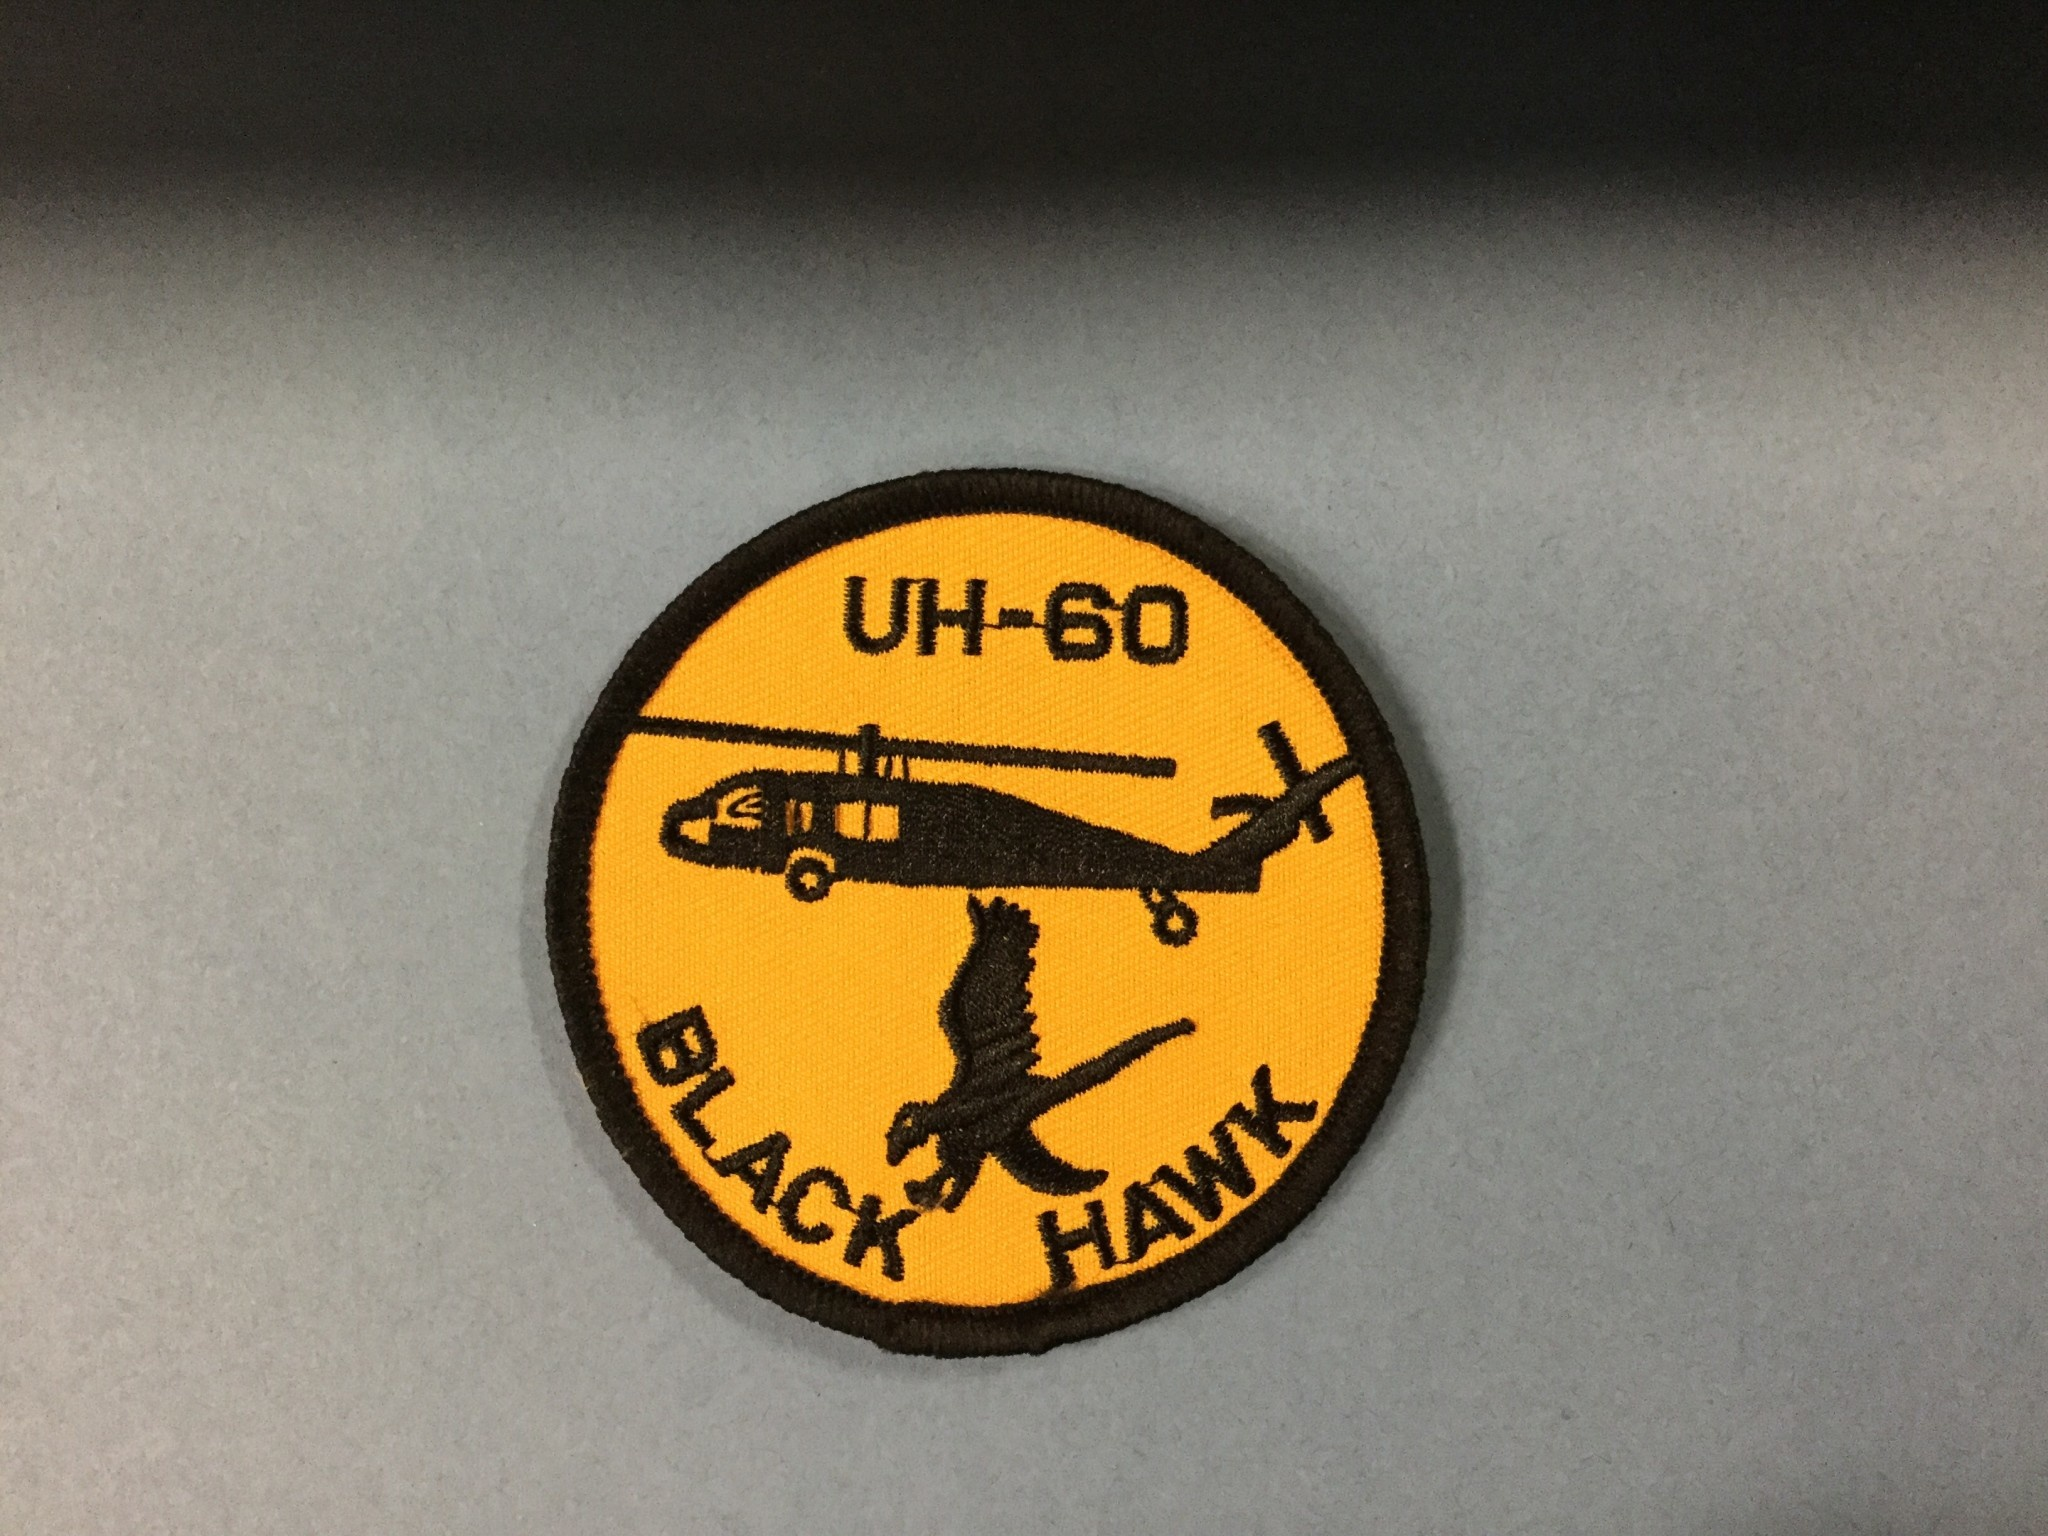 HOOVER'S MFG CO. BLACKHAWK, UH-60